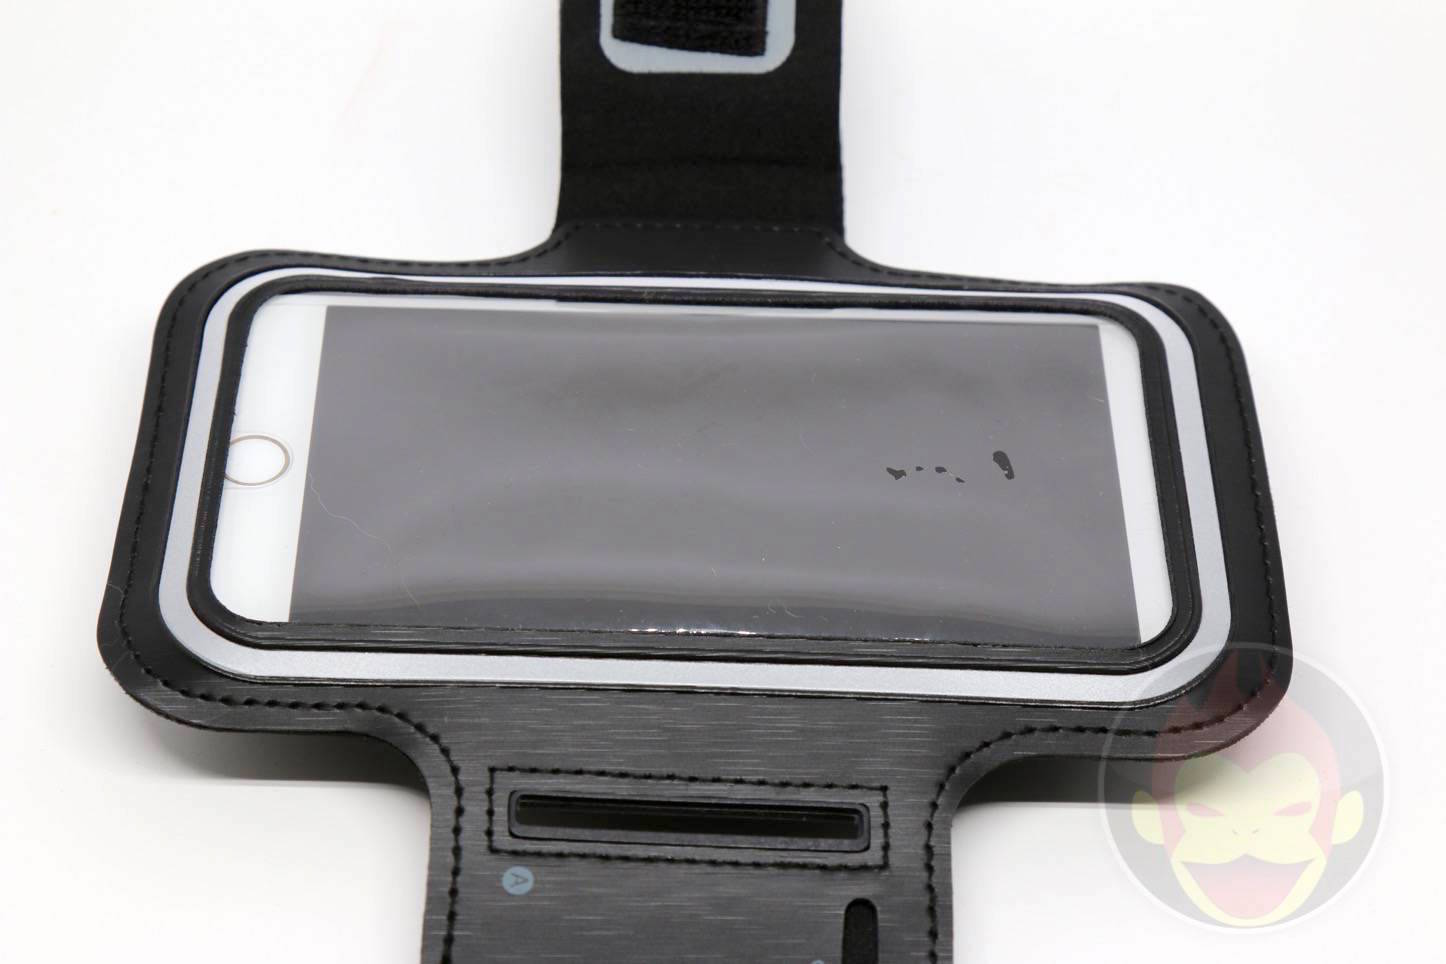 iPhone-6-Plus-Running-Arm-Band-12.JPG